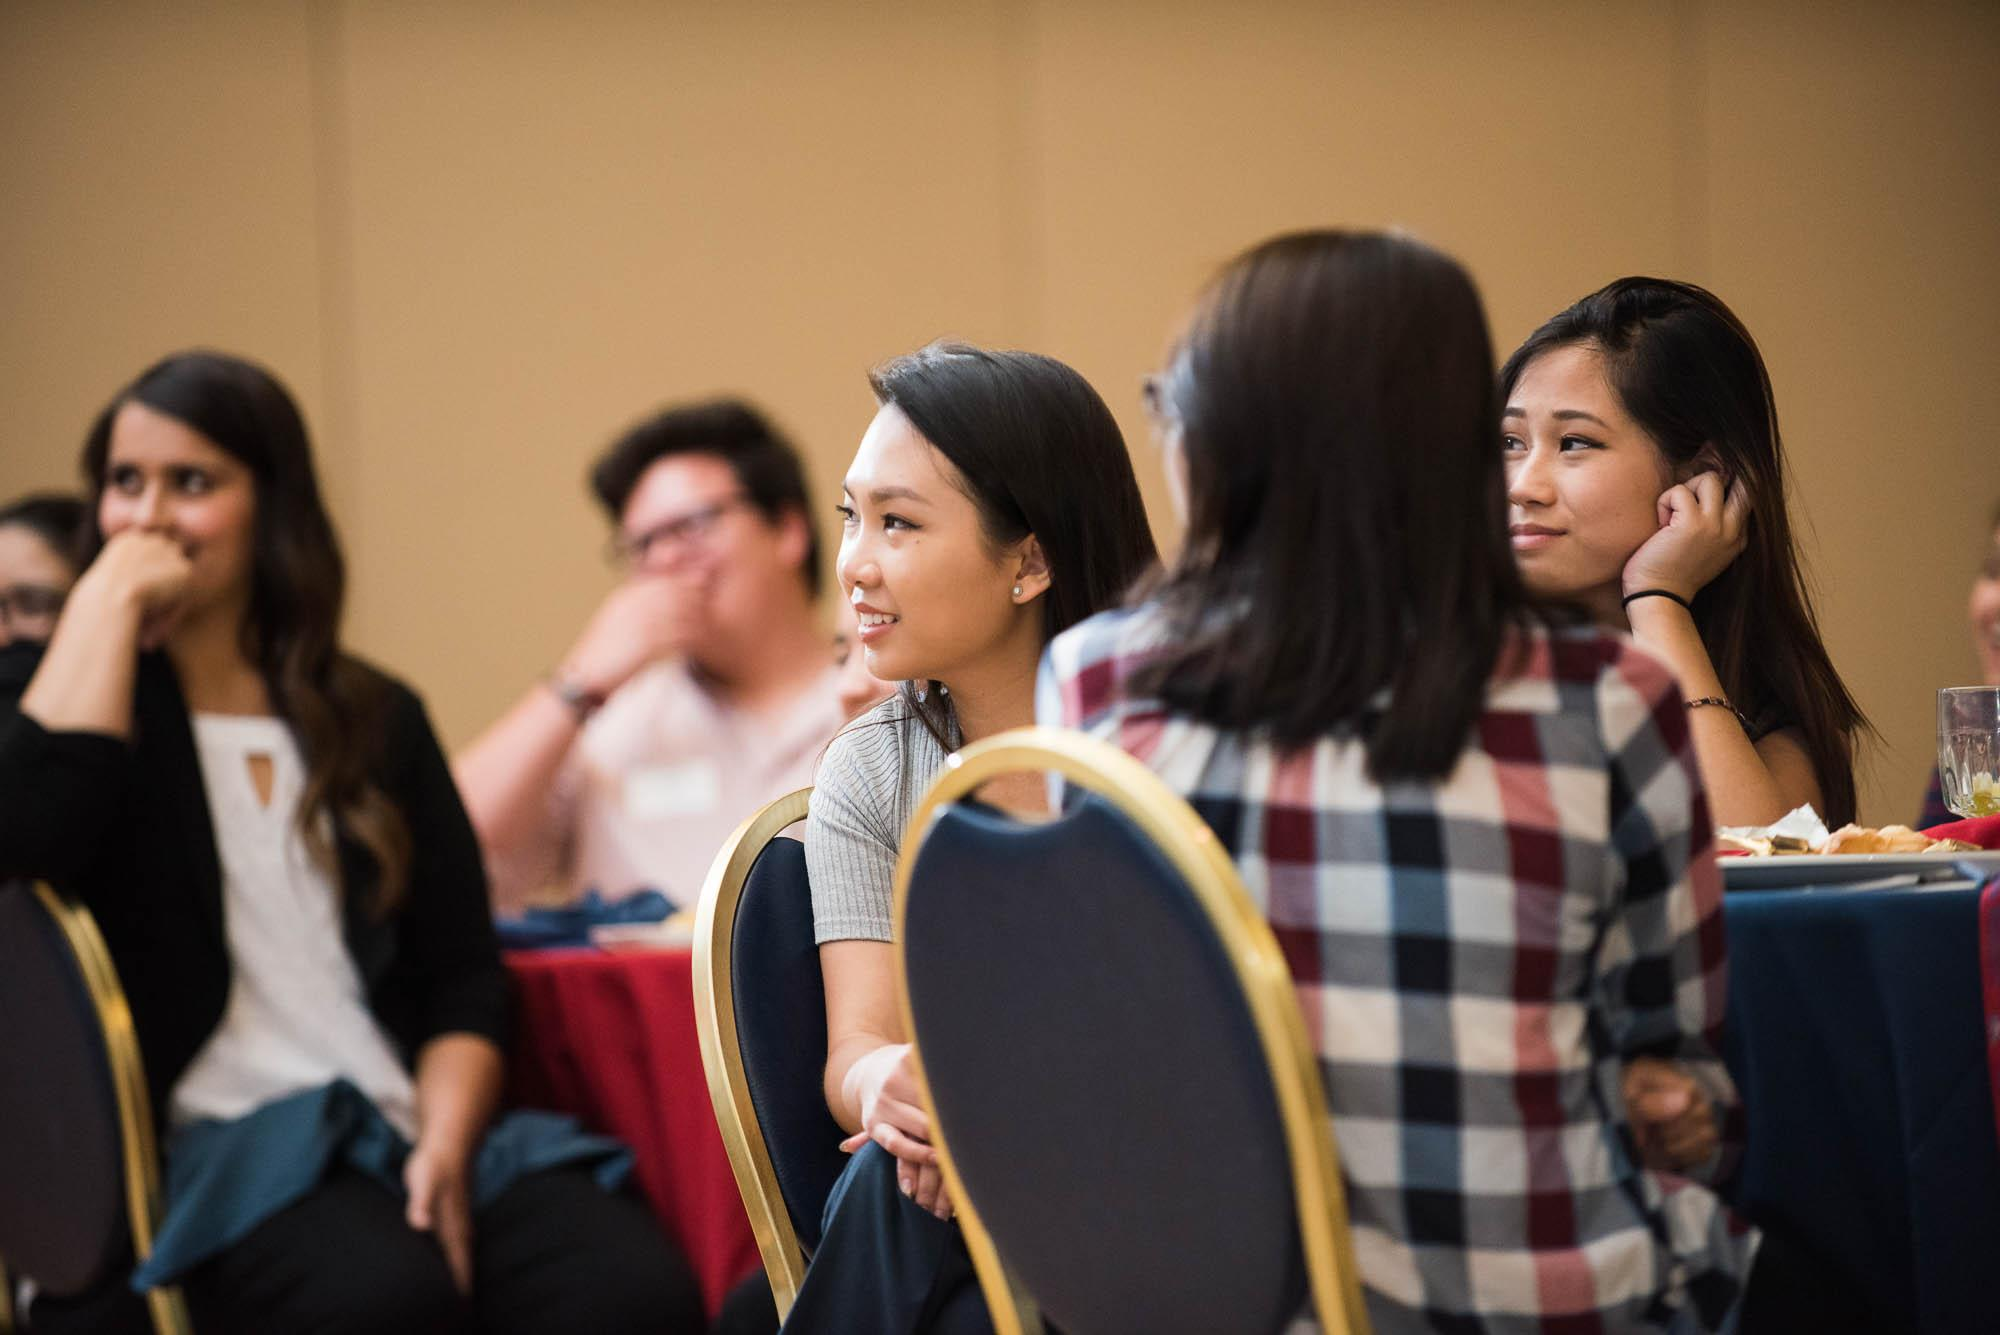 Students had a chance to develop their networking skills and make contacts for the future during the event, sponsored by the UA Alumni Association.